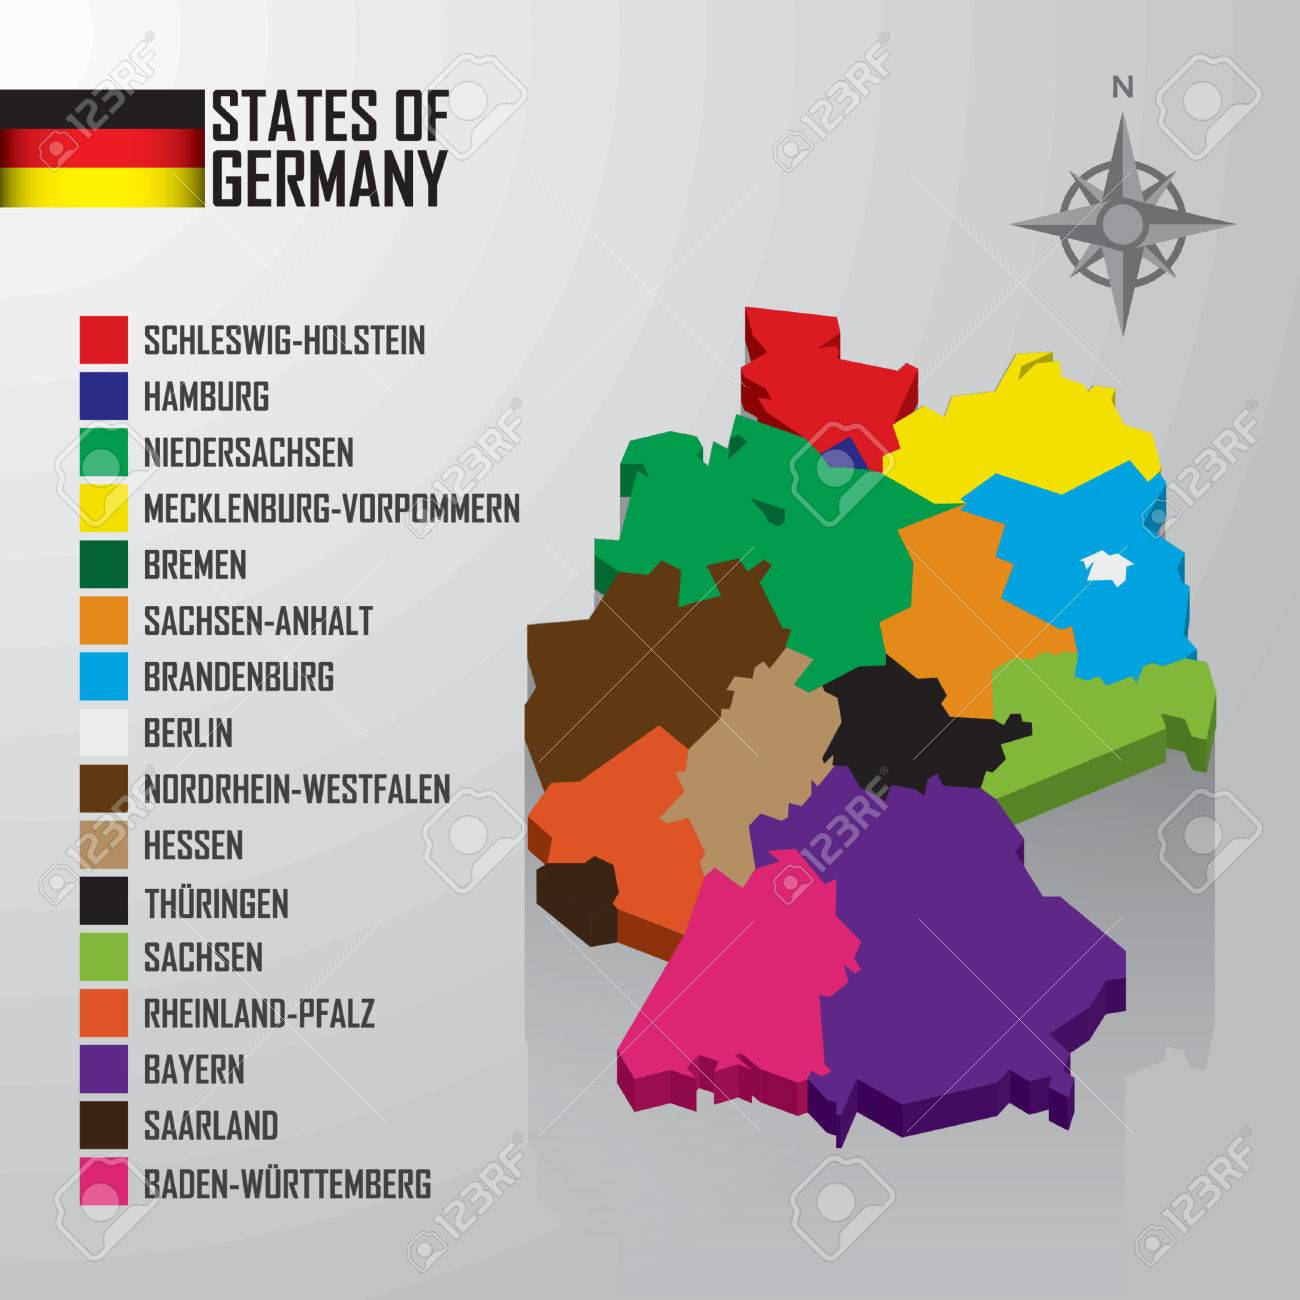 Germany Map Of States.States Of Germany Map